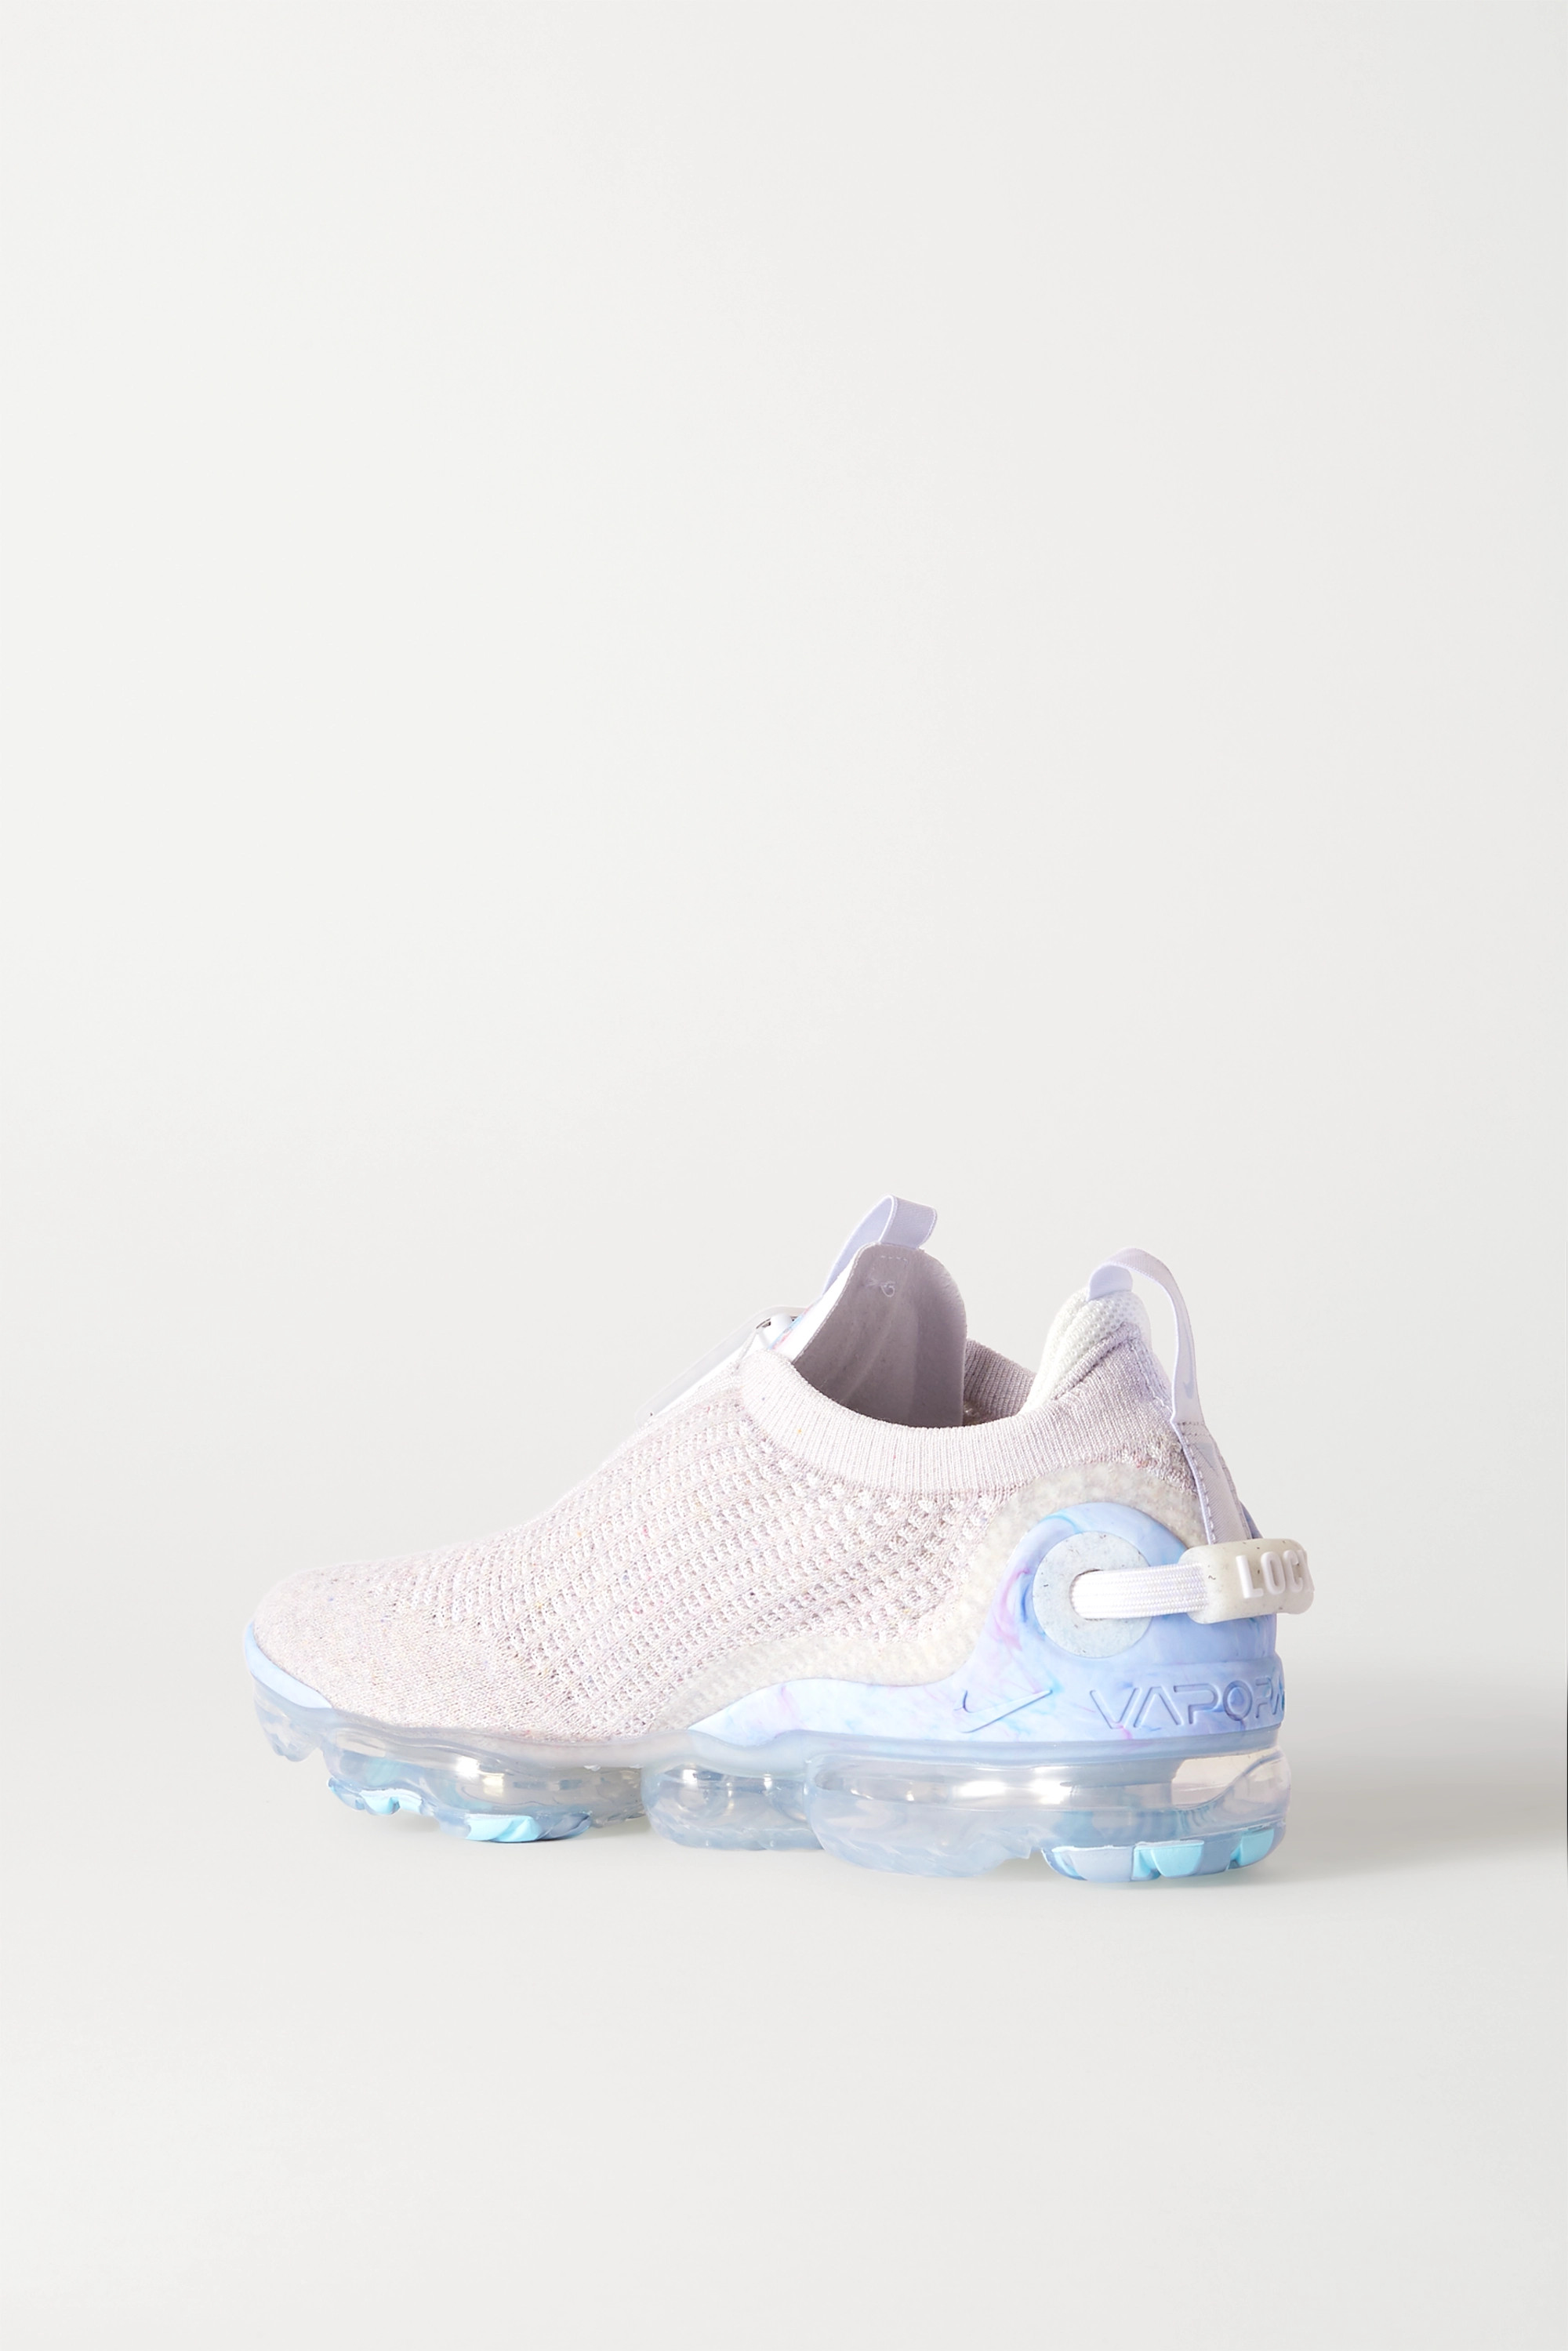 Nike Air VaporMax 2020 Flyknit Sneakers